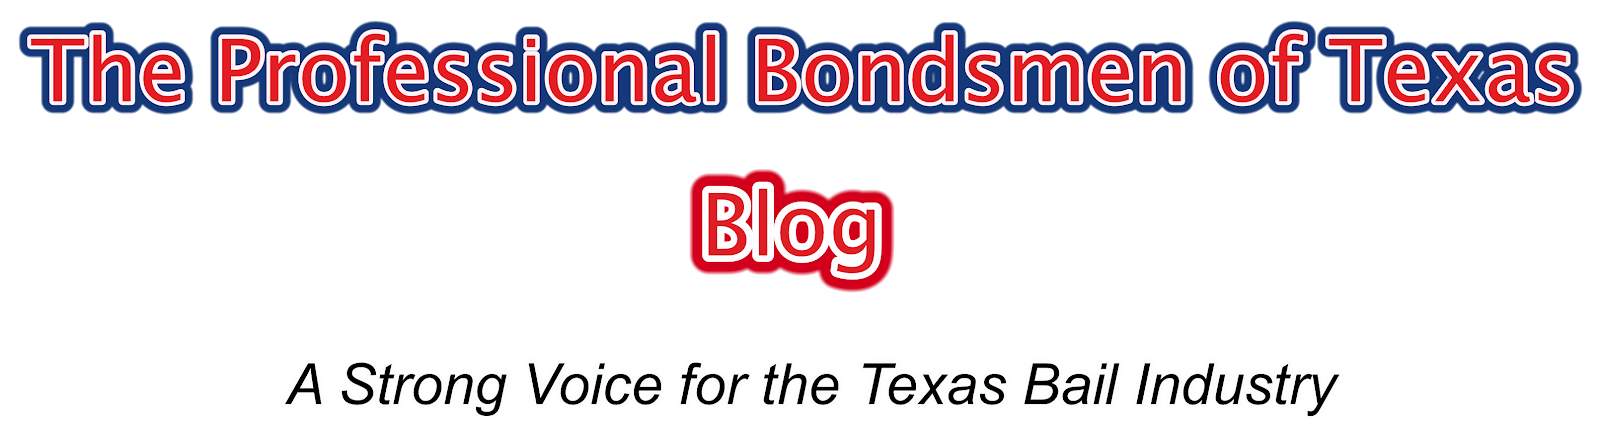 The Professional Bondsmen of Texas- Blog